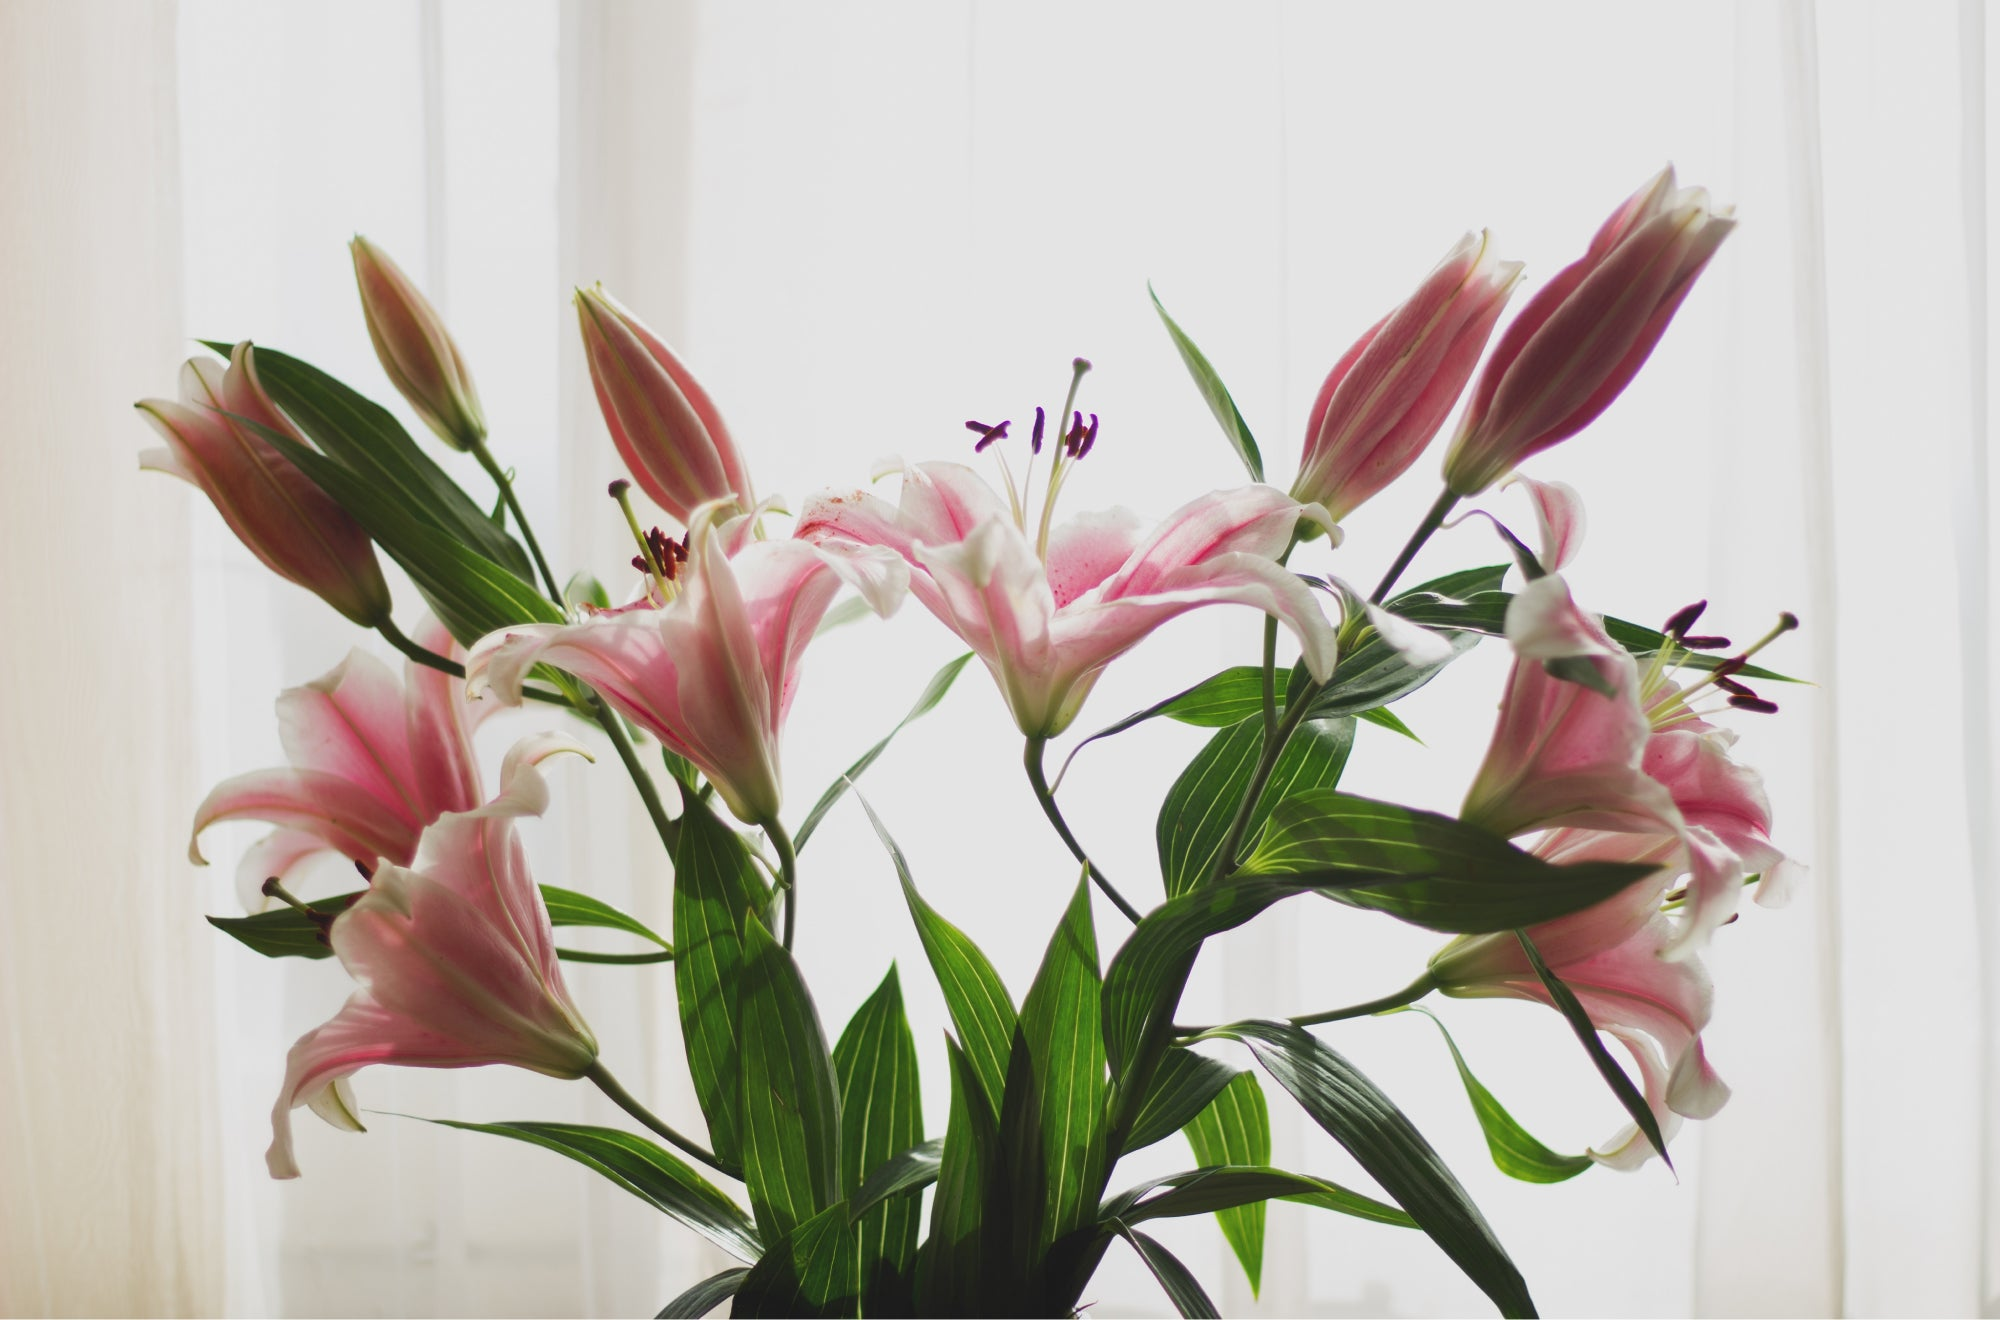 Lilies symbolize fertility, hope for the future, birth, and renewal. They're ideal for birthdays | Talsam